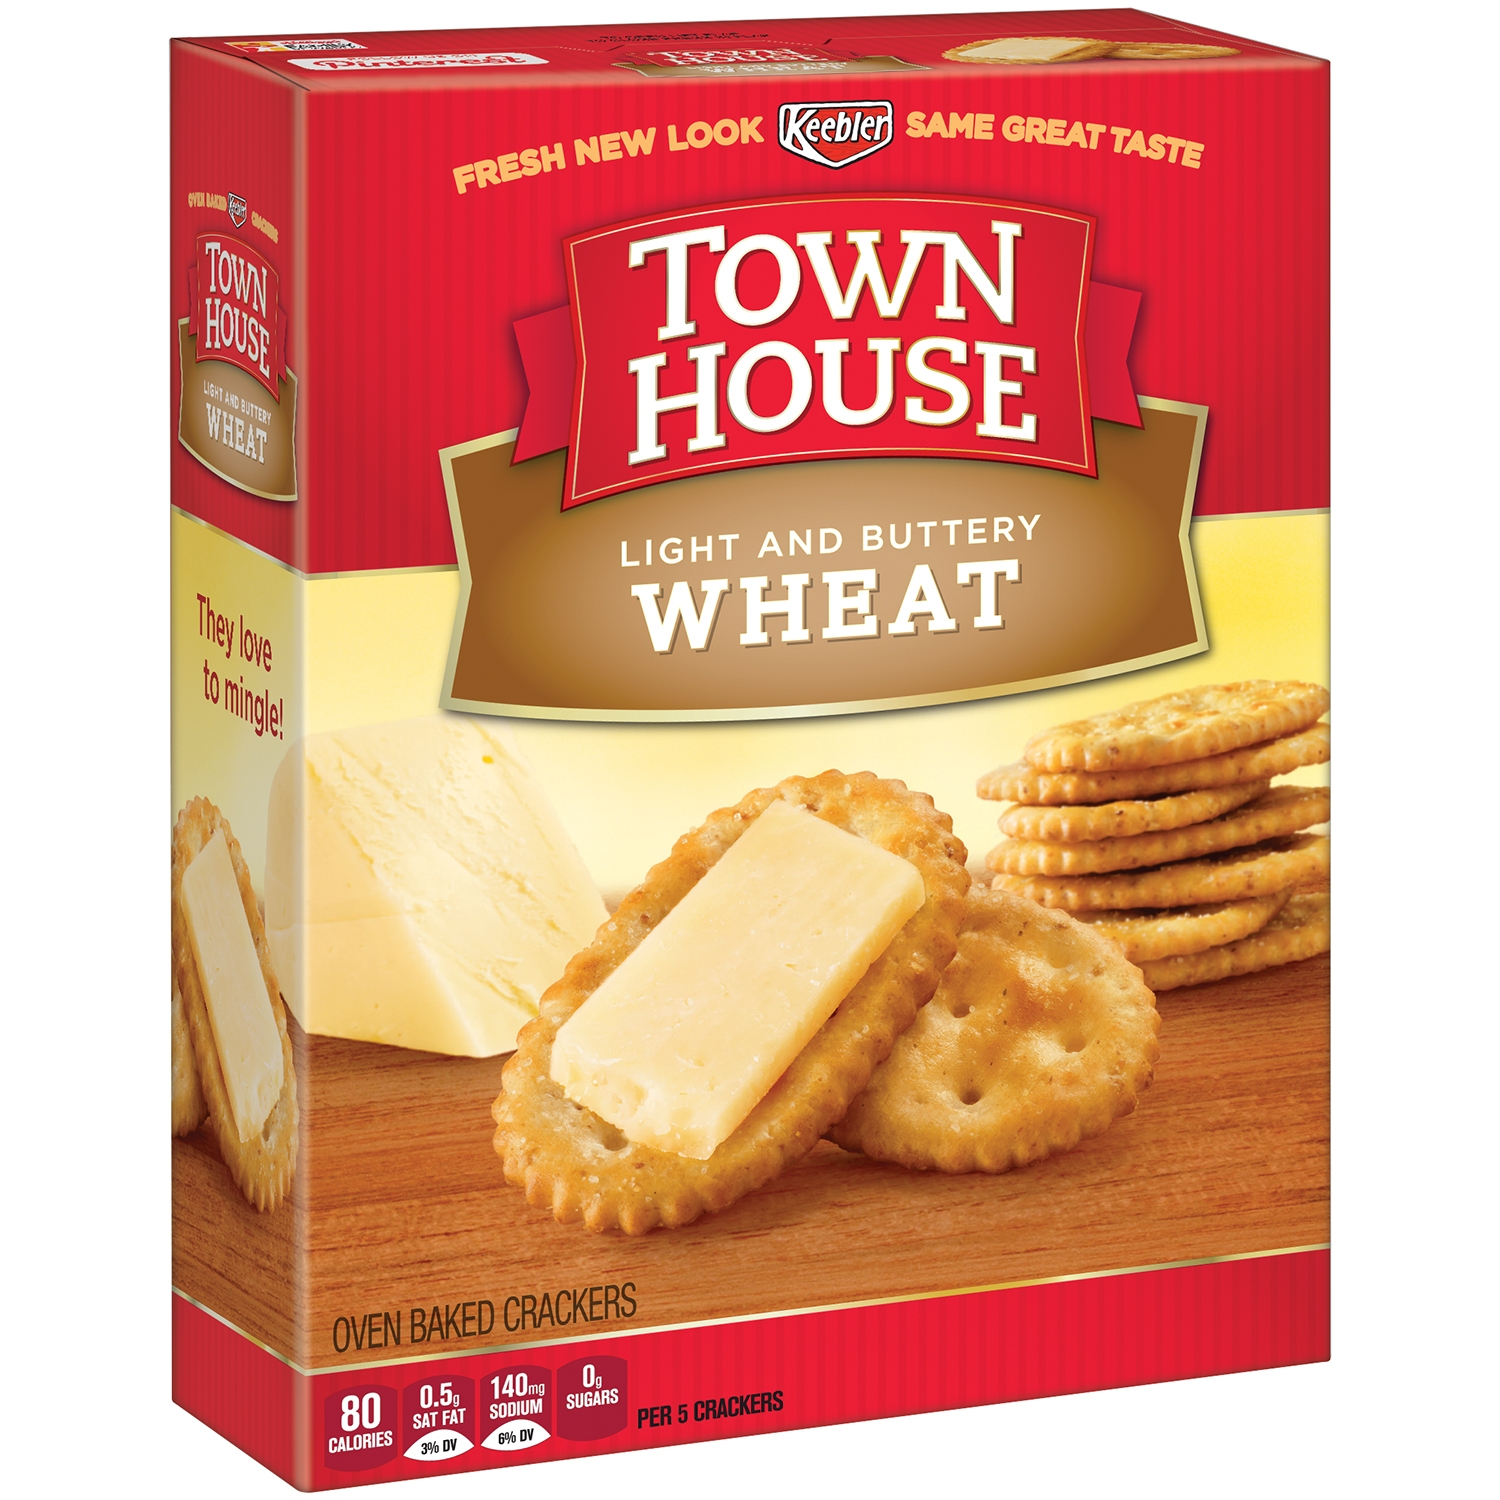 Keebler Town House Light Buttery Crackers Wheat, 13.8 OZ